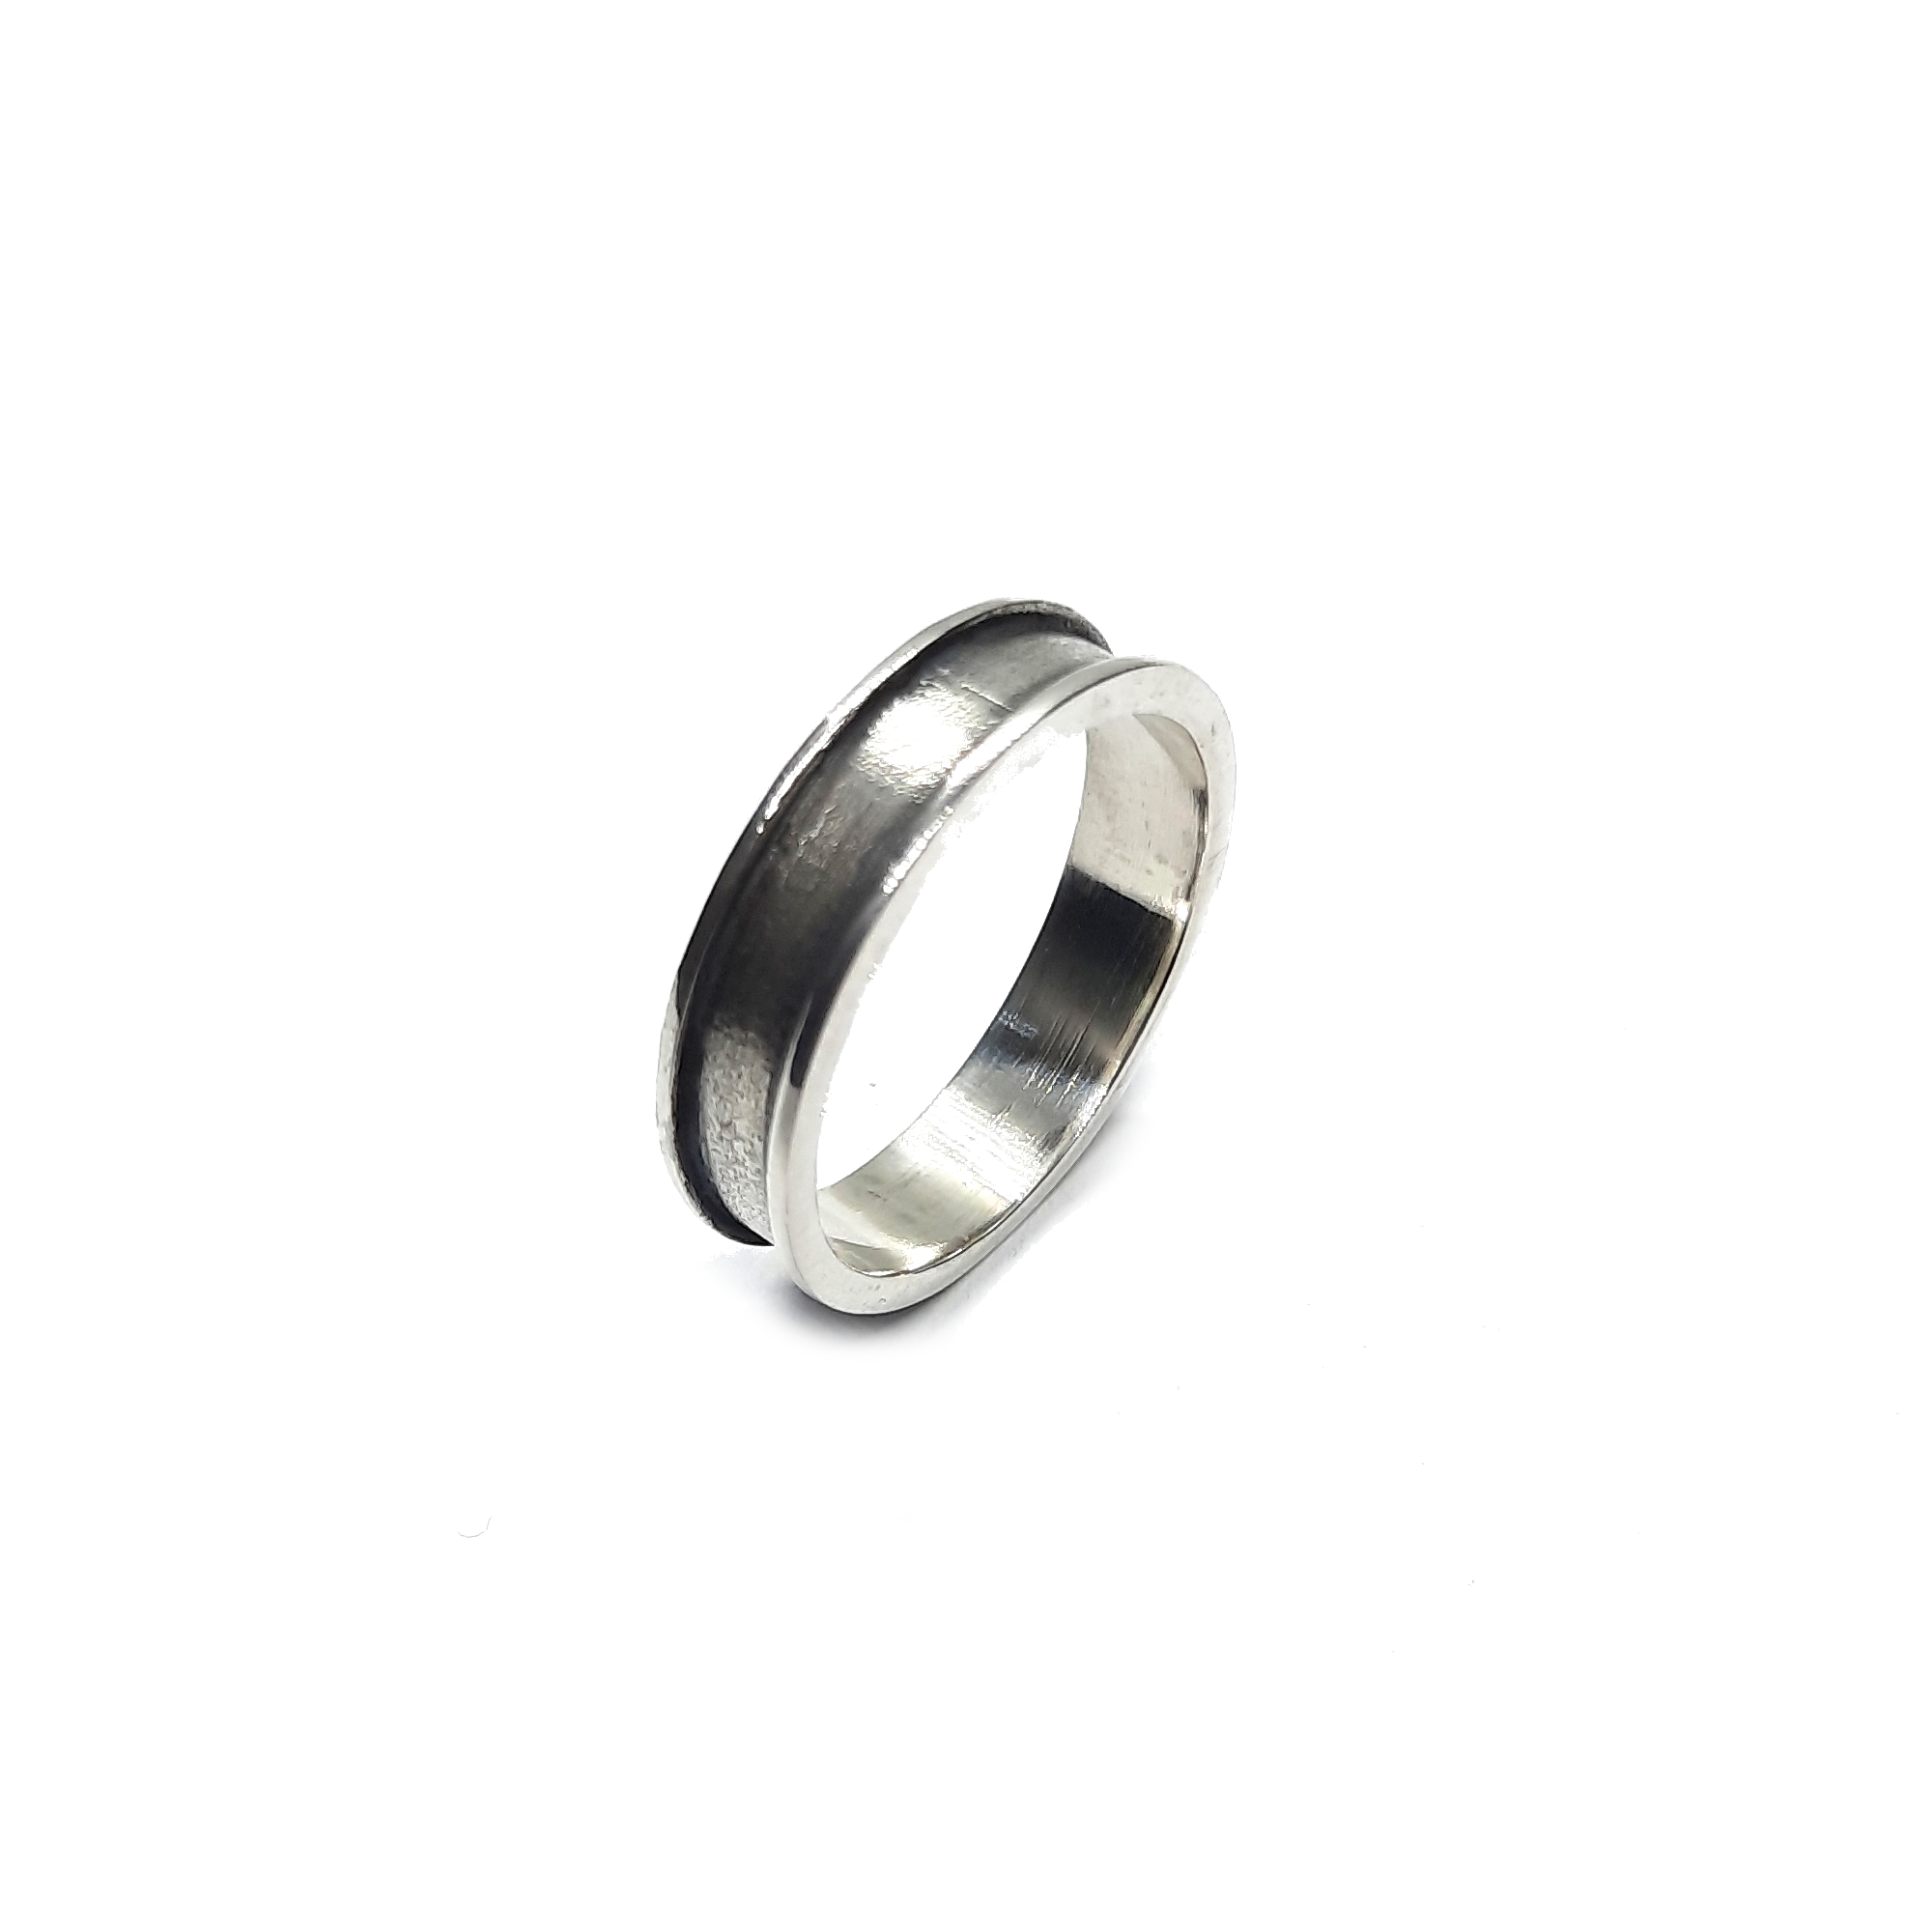 Silver ring - R002216